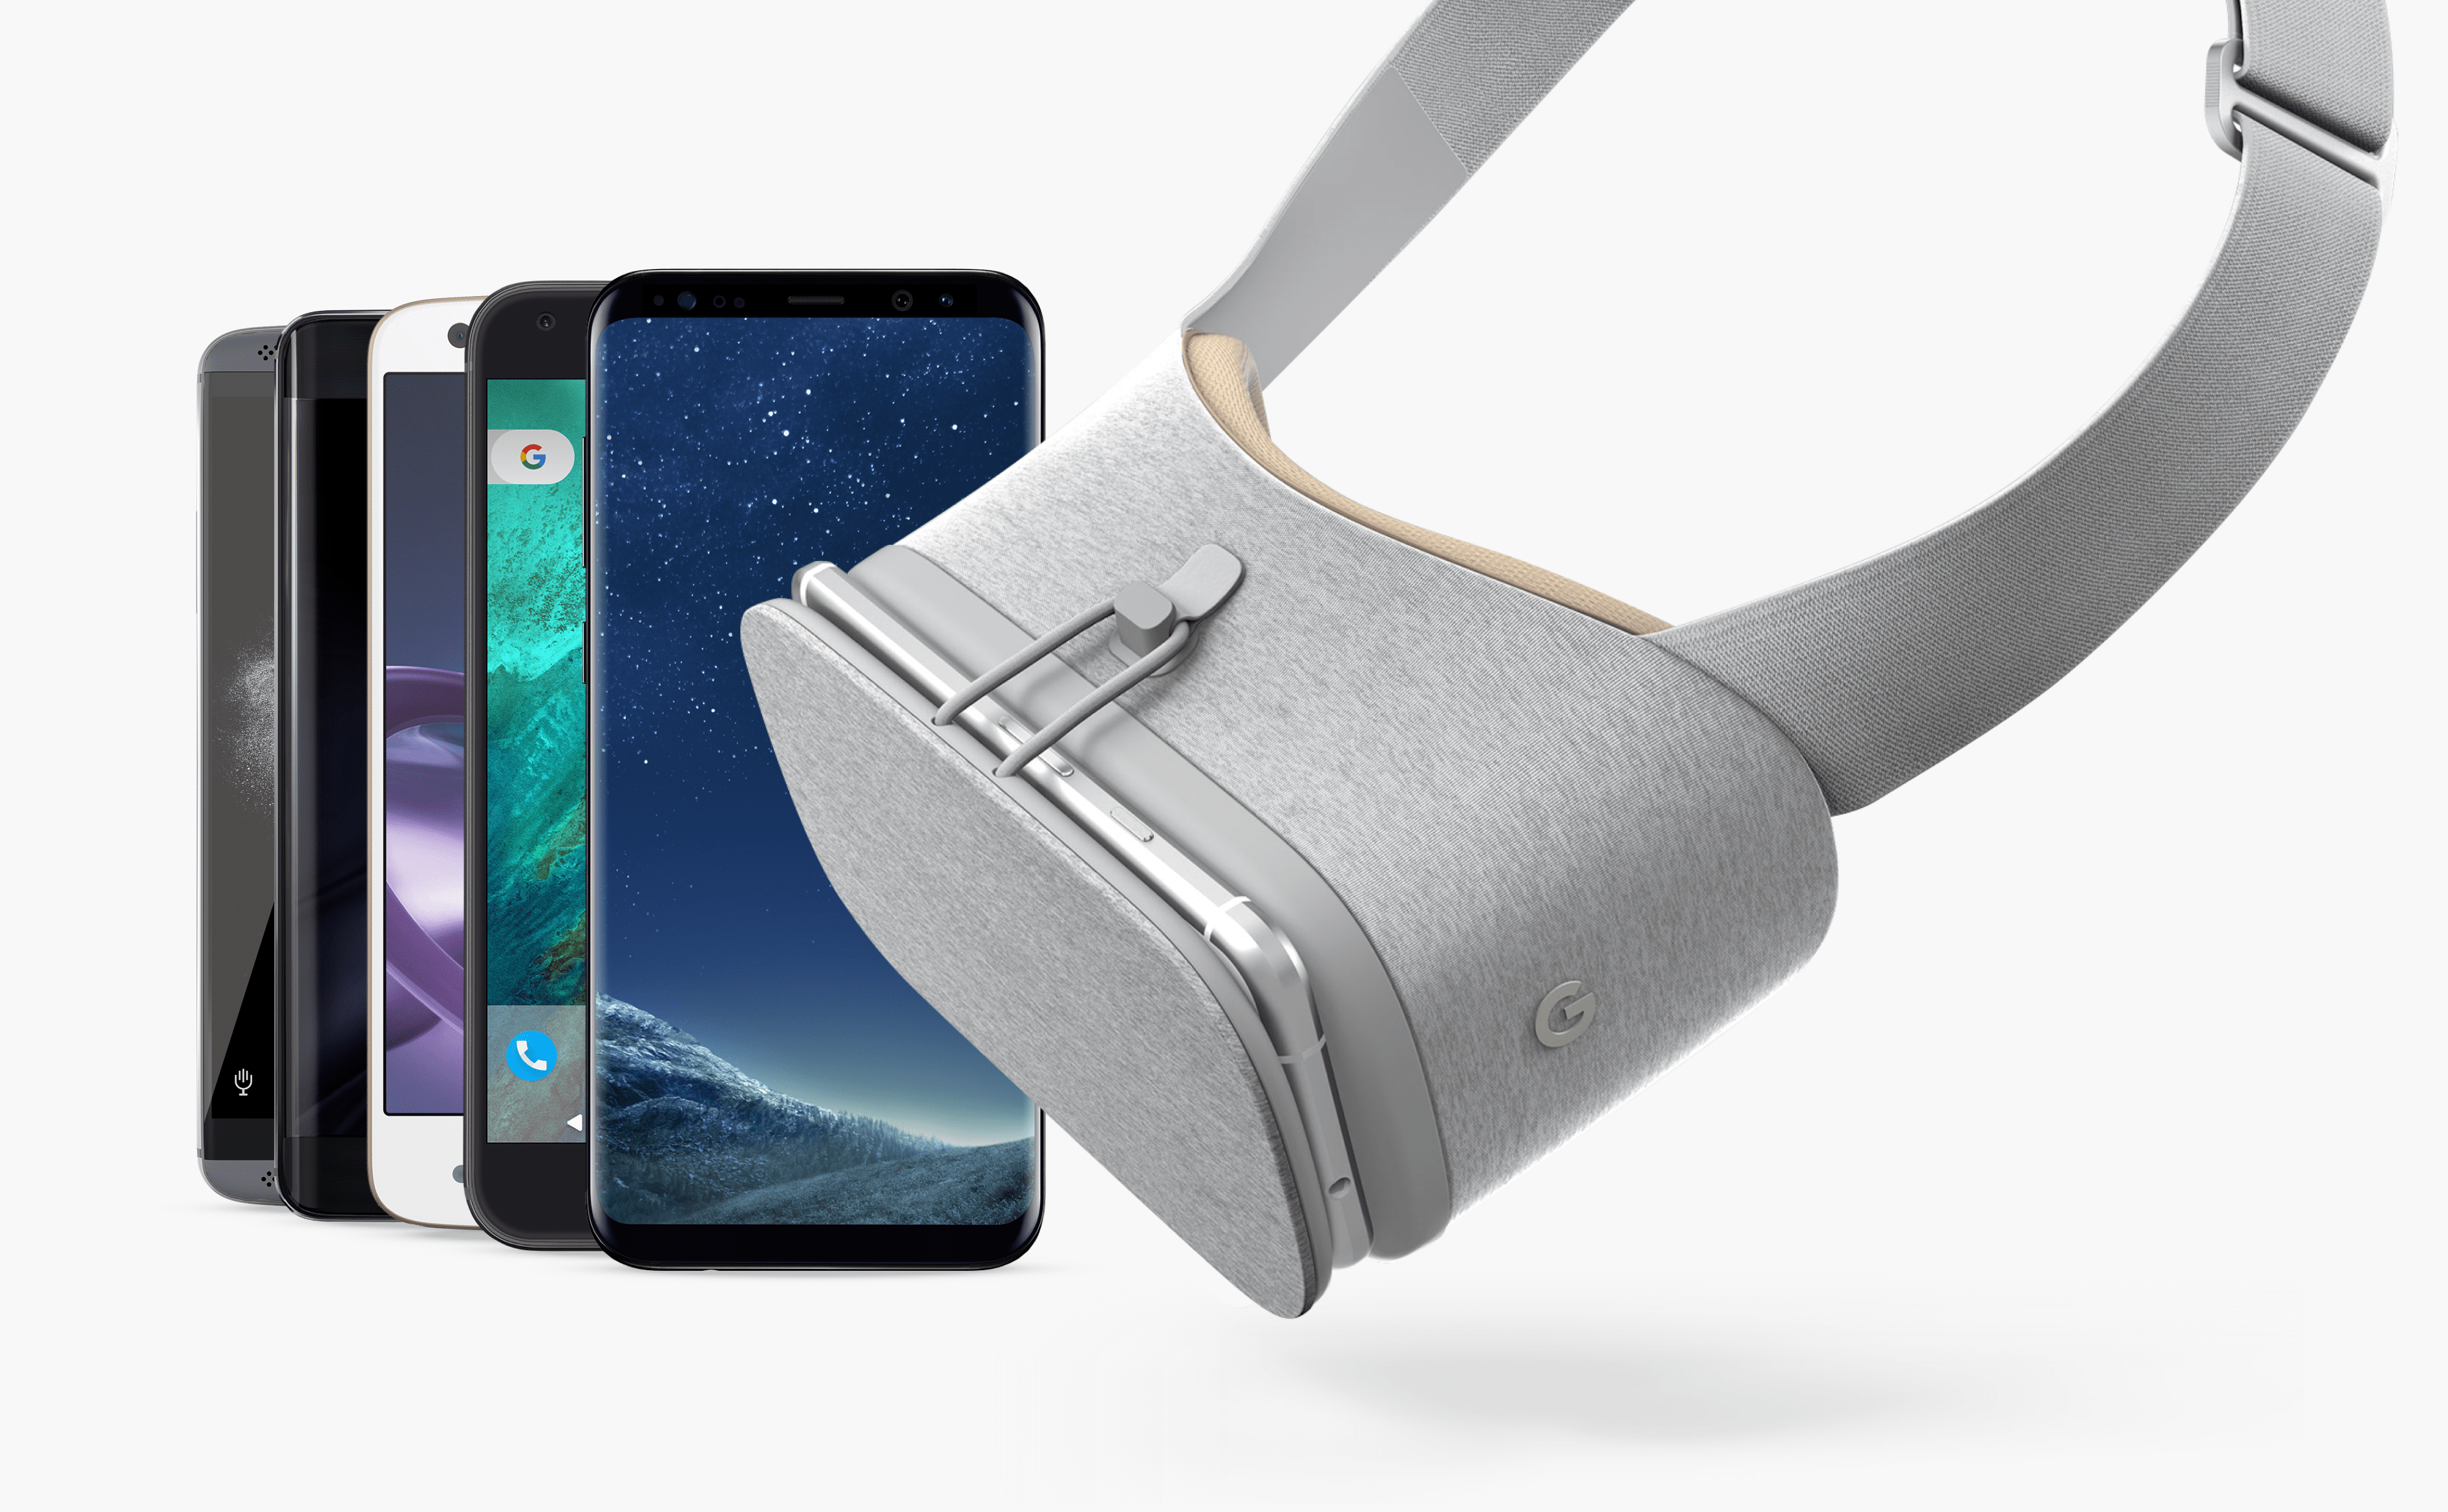 Best of both worlds: Samsung Galaxy S8 is now compatible with Google Daydream